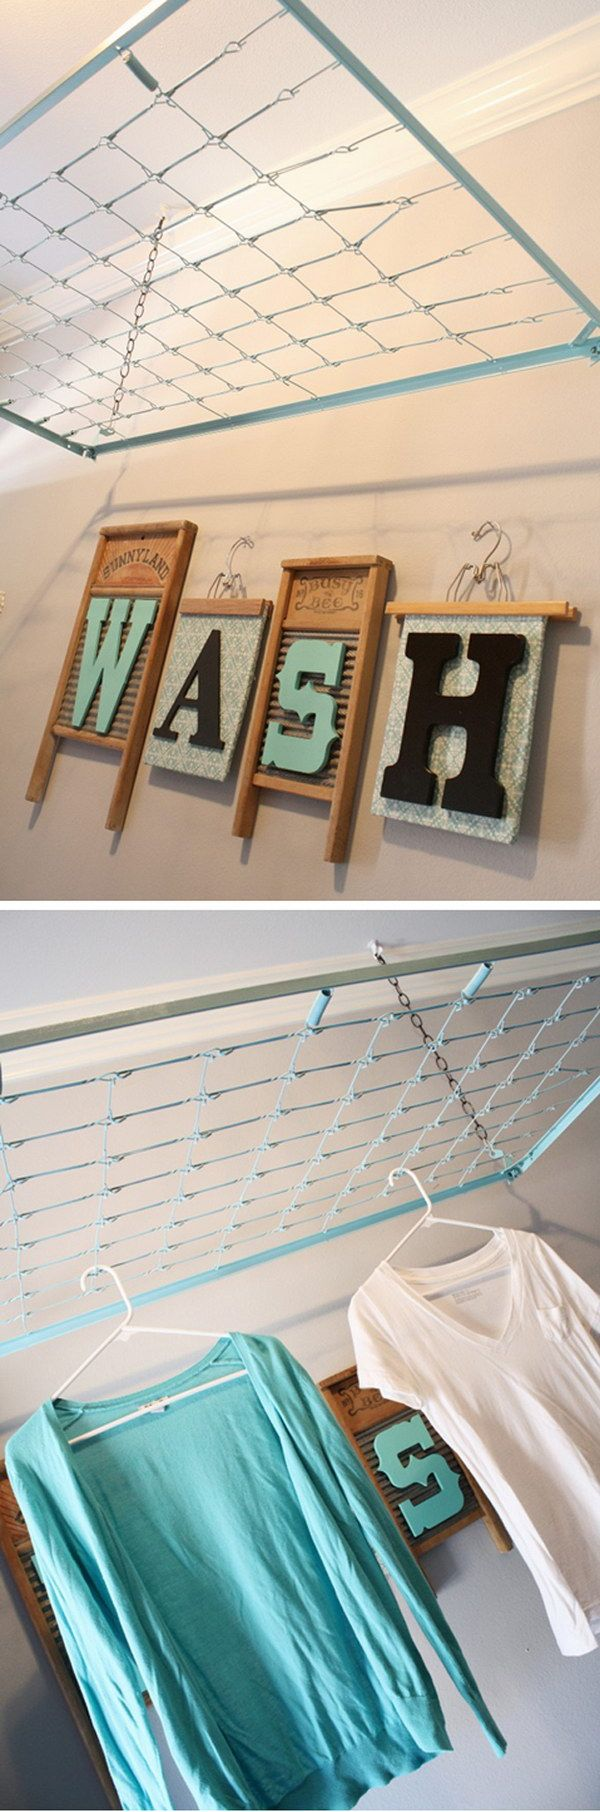 laundry storage and organization ideas crib spring repurpose